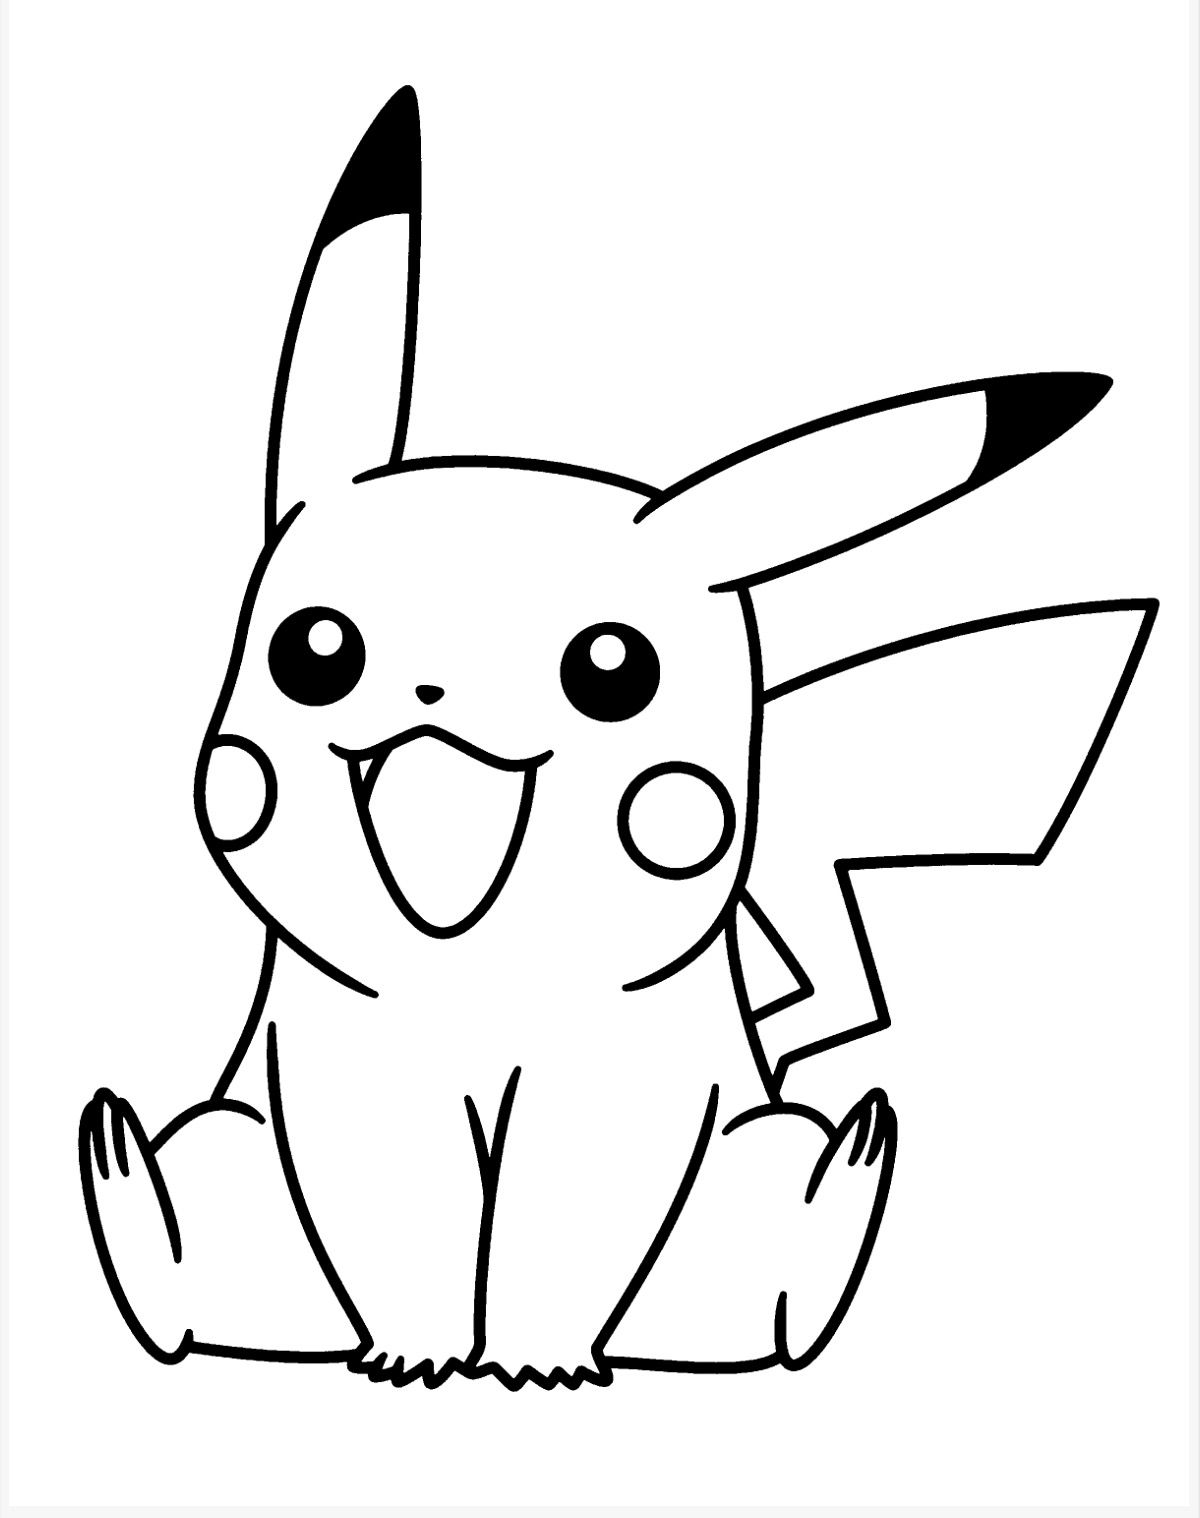 pikachu black and white Colouring Pages